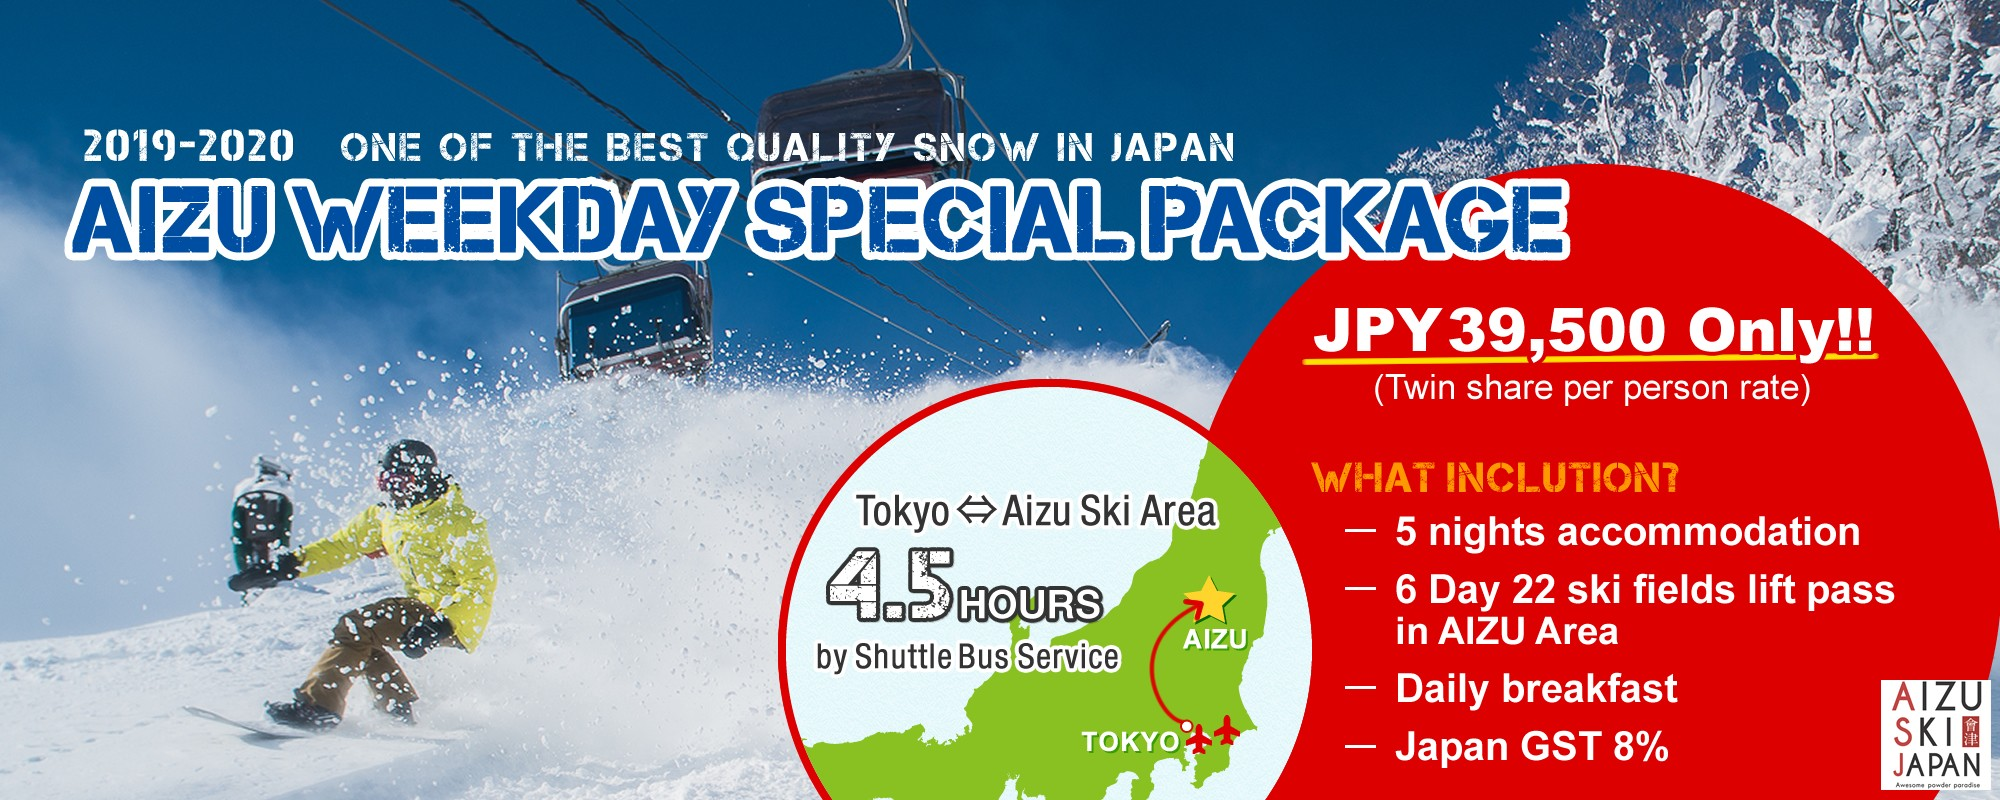 Aizu weekday special package